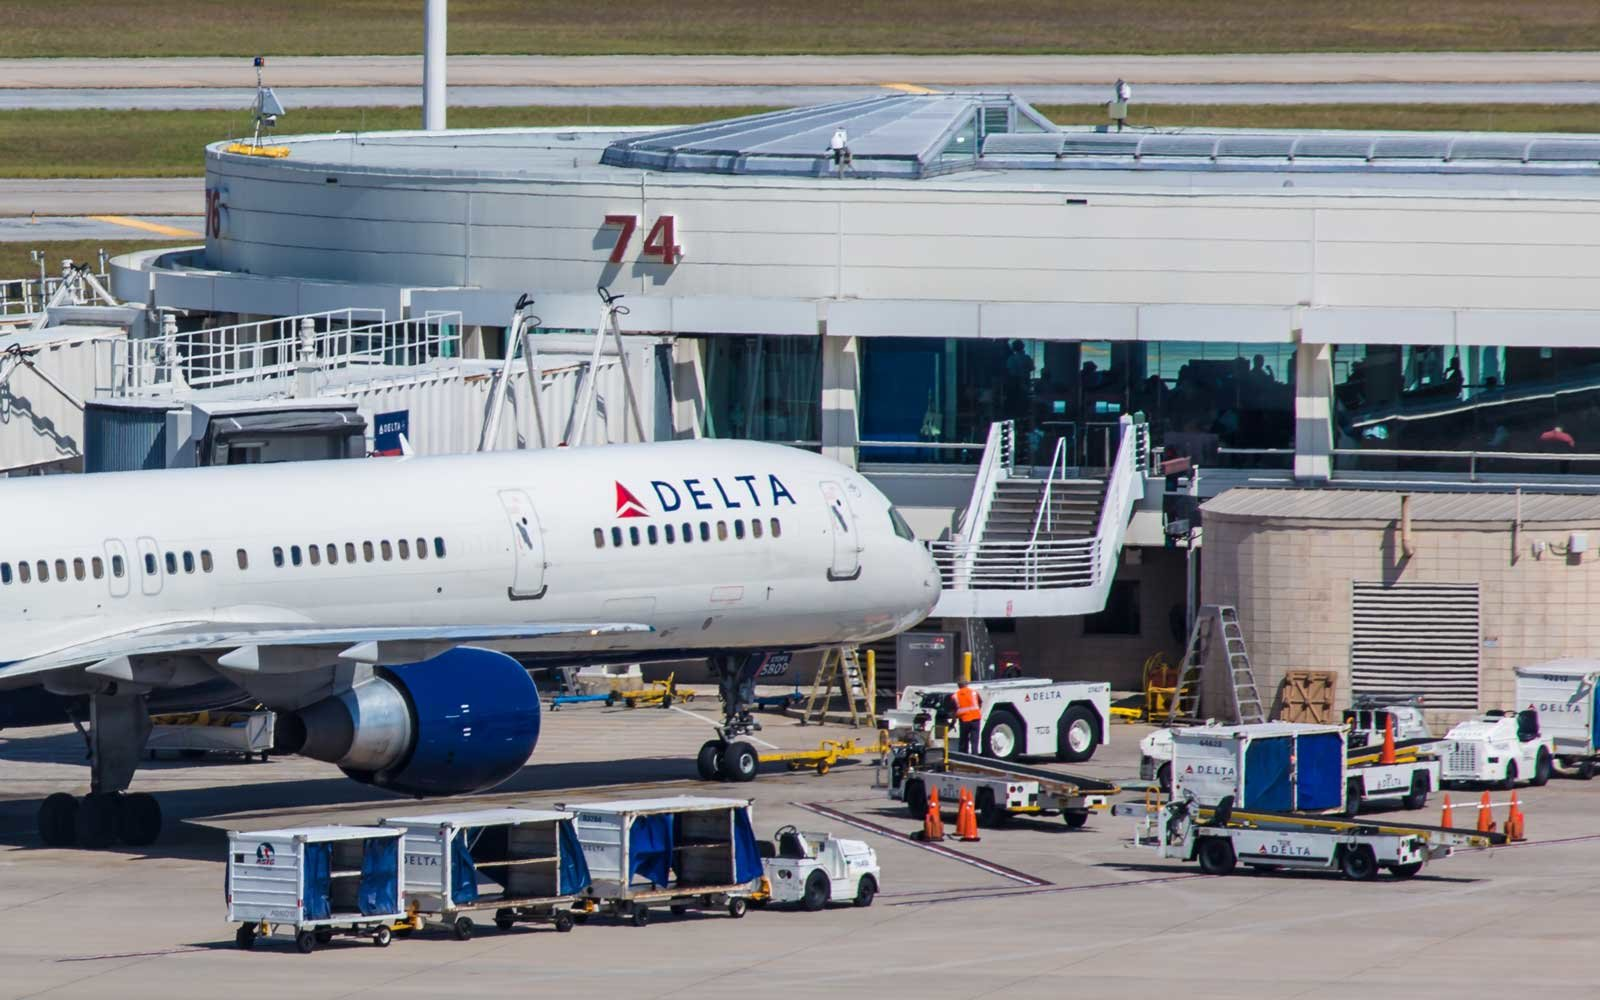 Woman boards plane in Orlando without any ID or a ticket